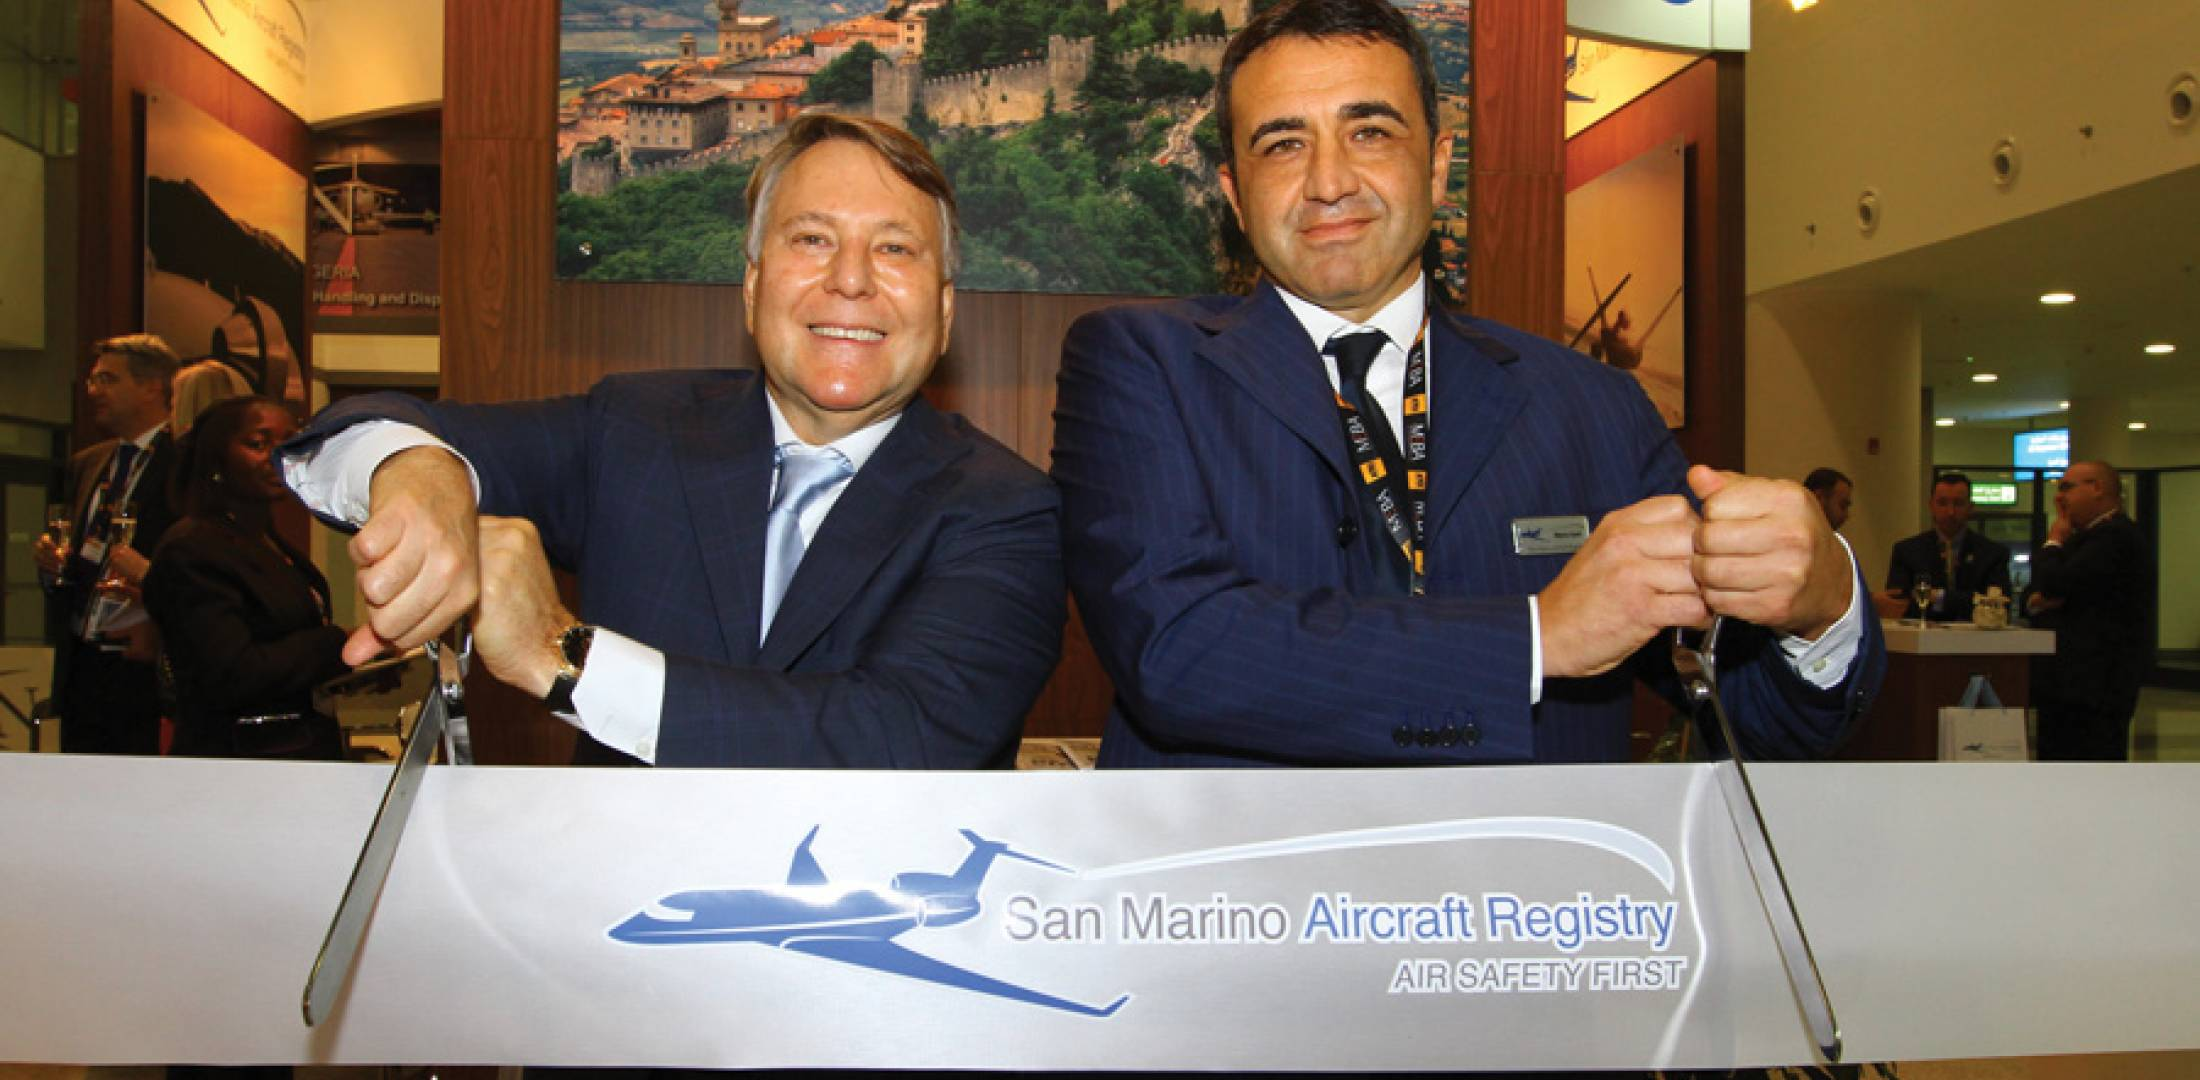 Jorge Colindres, CEO of the Aviation Registry Group (left), and San Marino civil aviation director Marco Conti are here at MEBA after having signed a 10-year exclusive agreement for ARG to administer the European state's aircraft registry, which has been opened up to foreign owners.